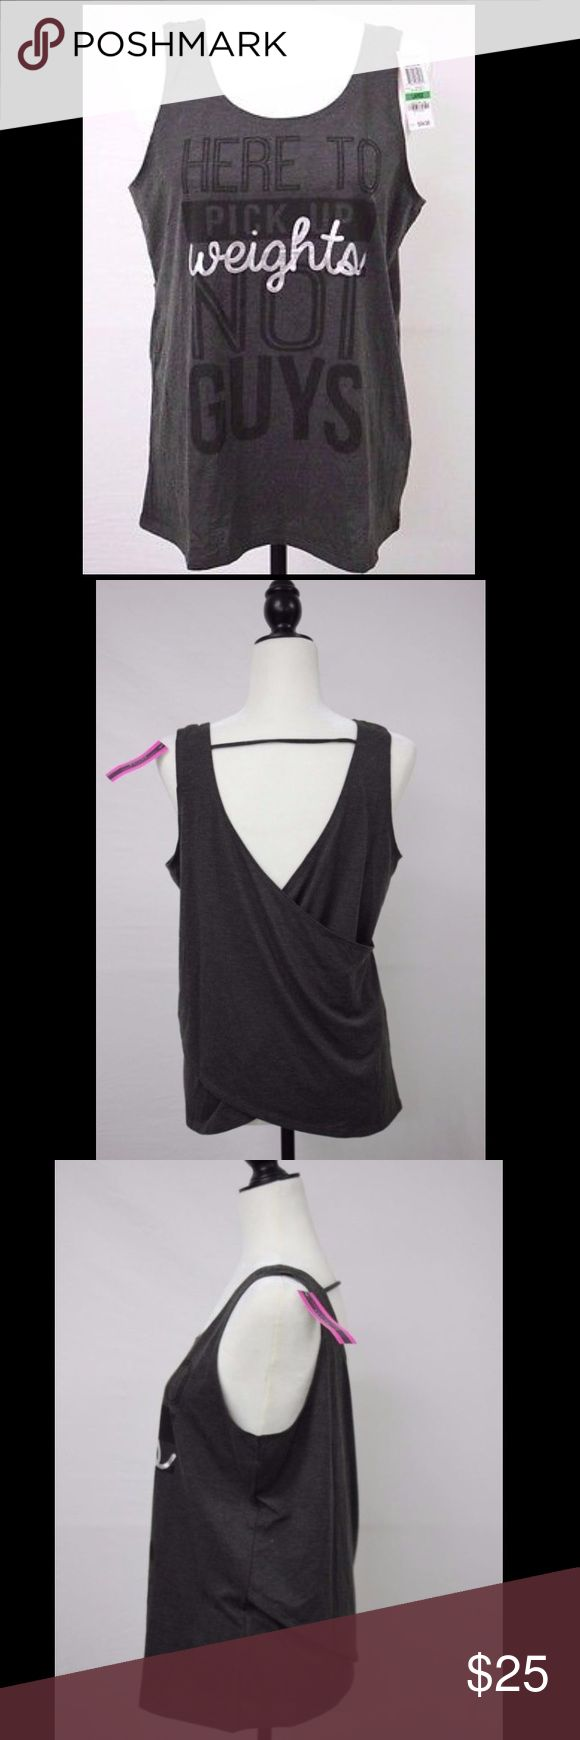 "Here to pick up weights not guys workout shirt Material Girl Gray Athletic Tank ""Here to Pick Up Weights Not Guys"". New with tags. Size medium! Make an offer! Material Girl Tops Tank Tops"